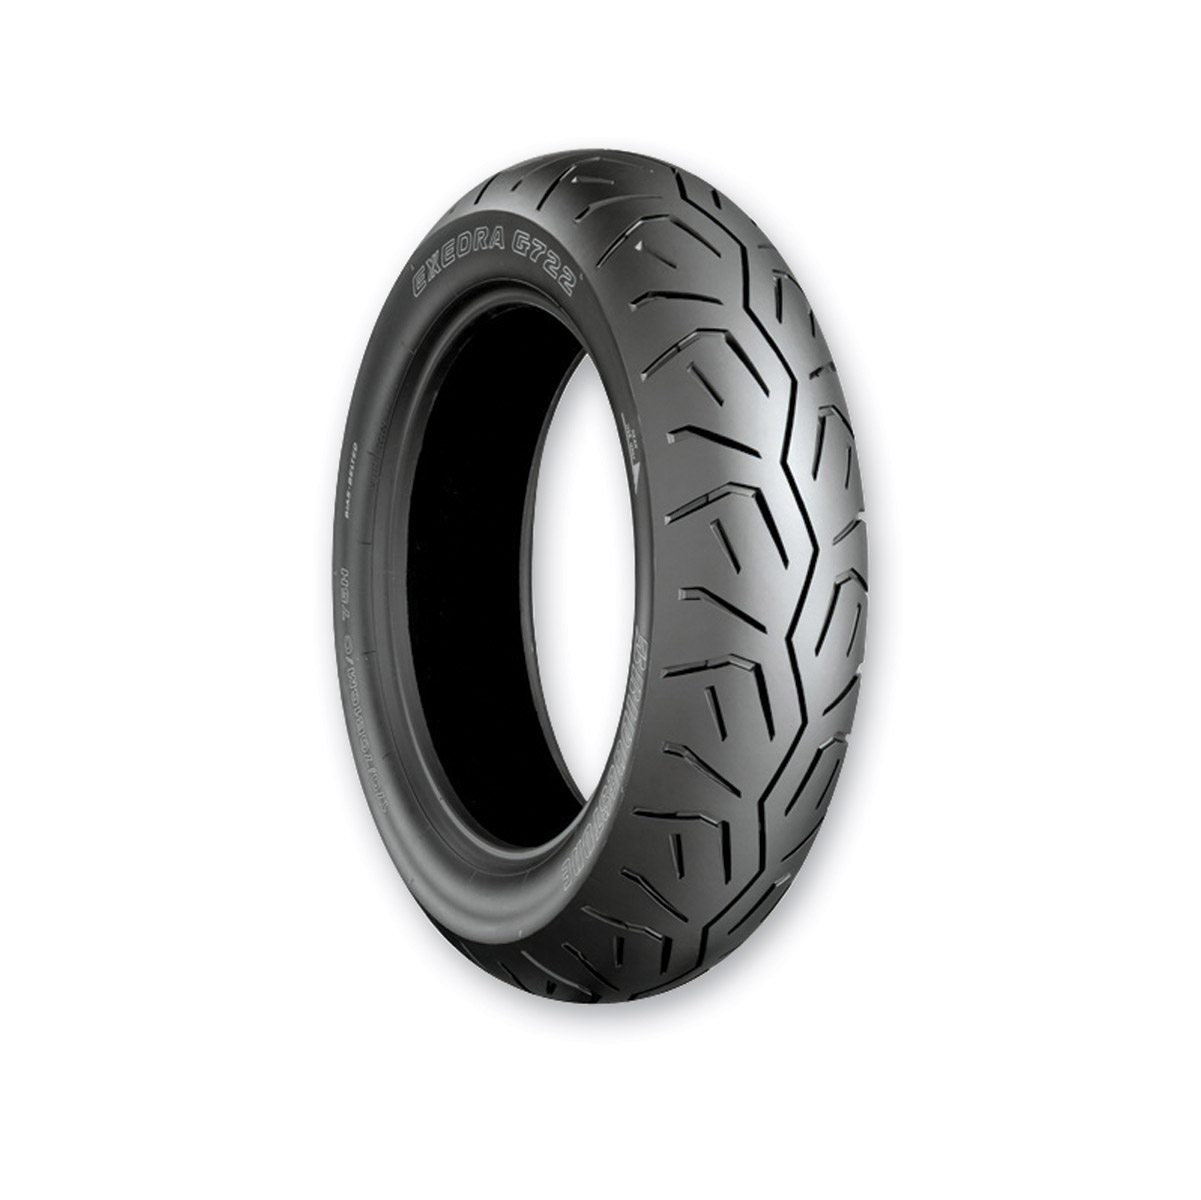 Bridgestone G722 170/70-16 Rear Tire